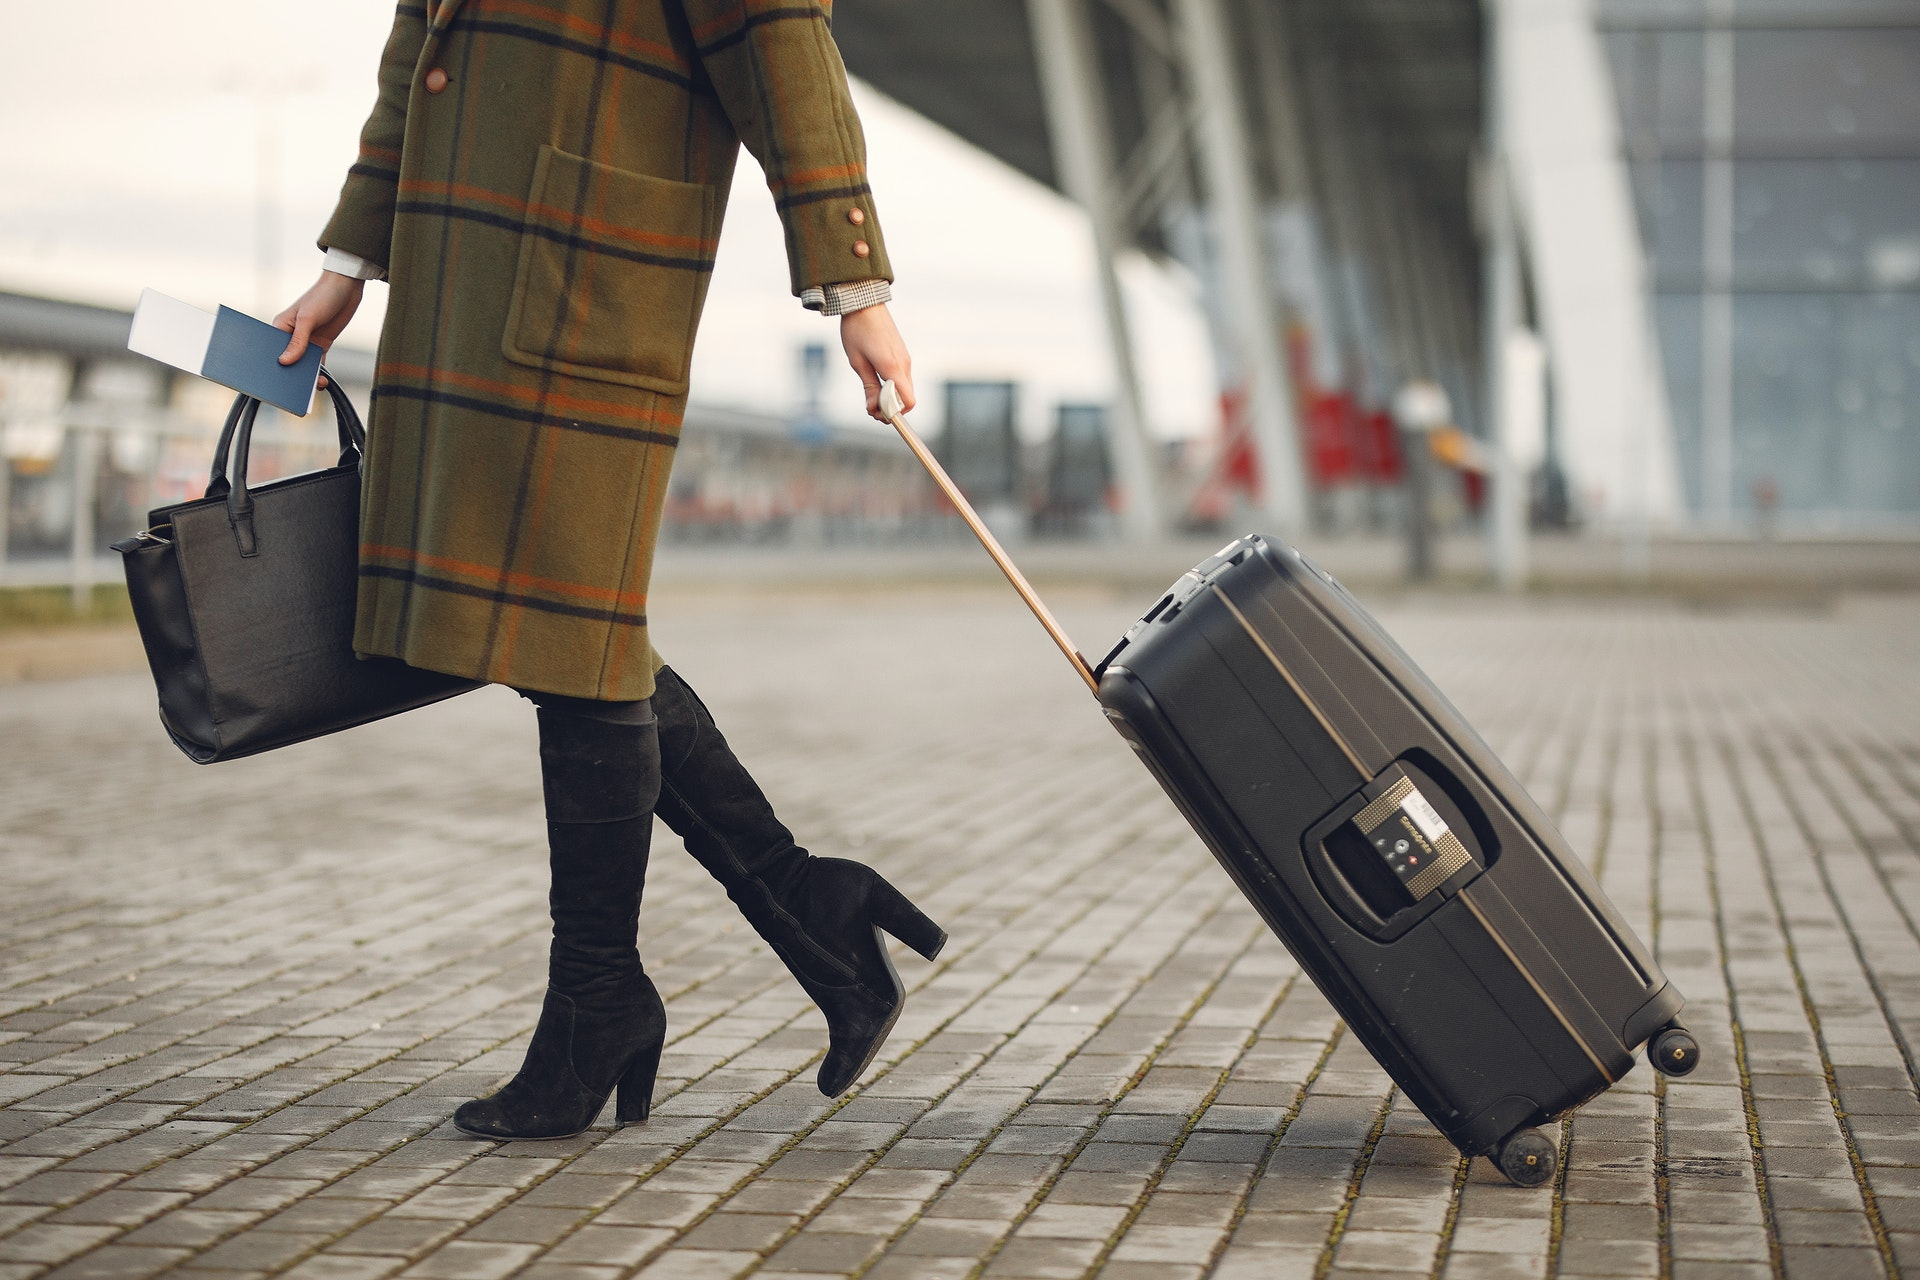 Taking supplements during your travel